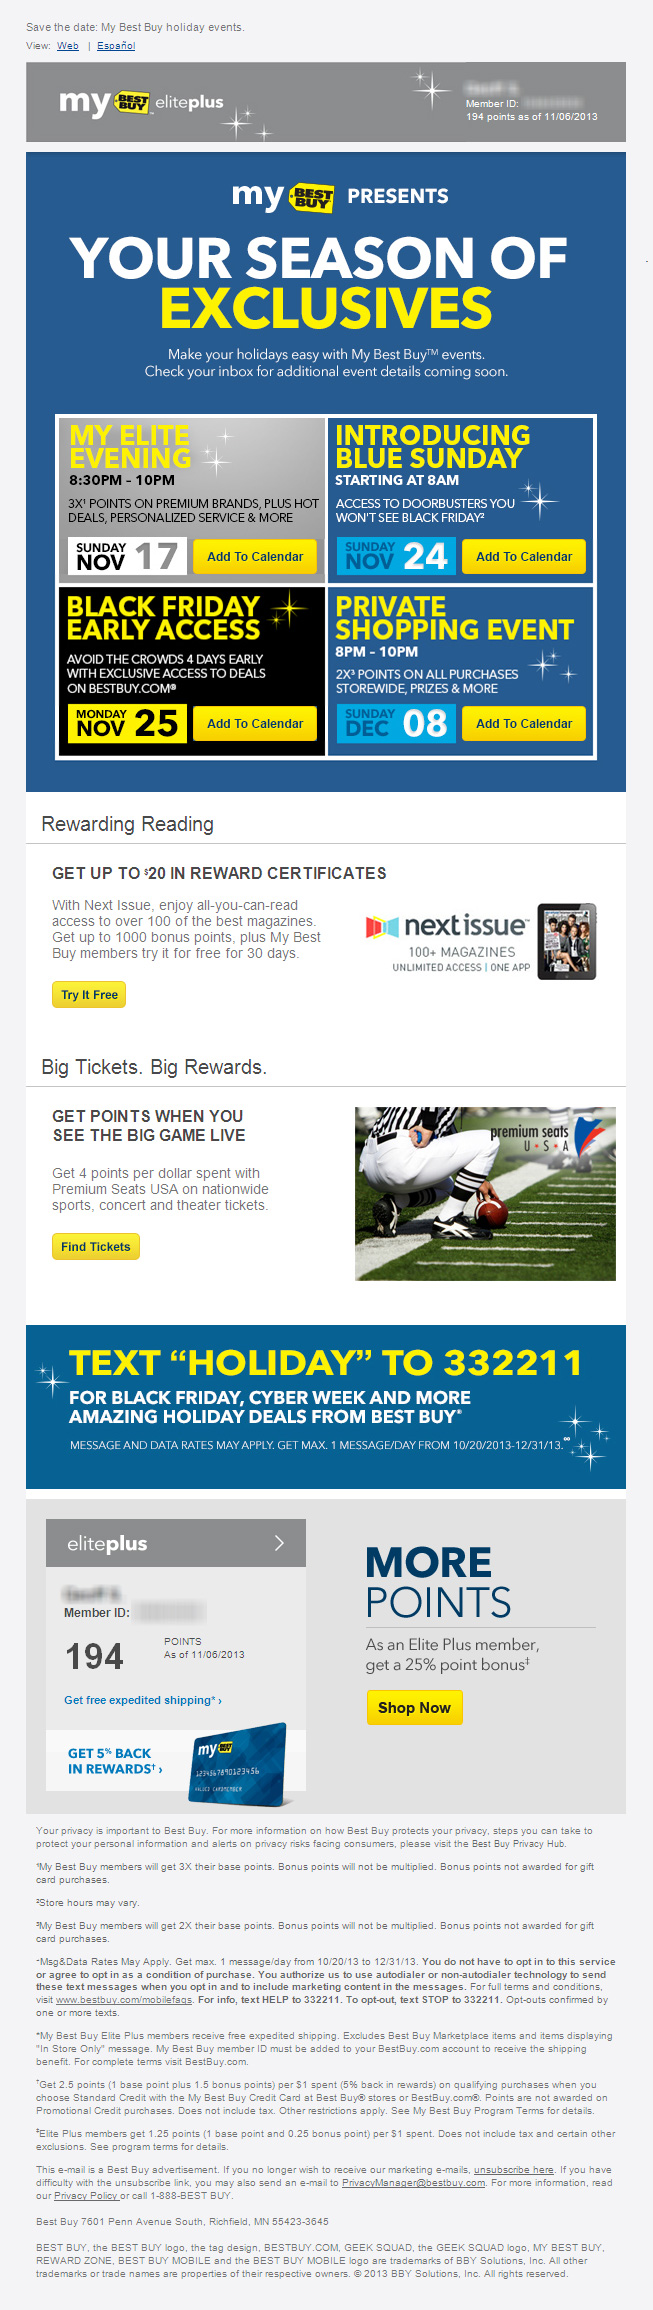 Gagemo Save The Date My Best Buy Holiday Events Holidays And Events Black Friday Email Design I Am Awesome